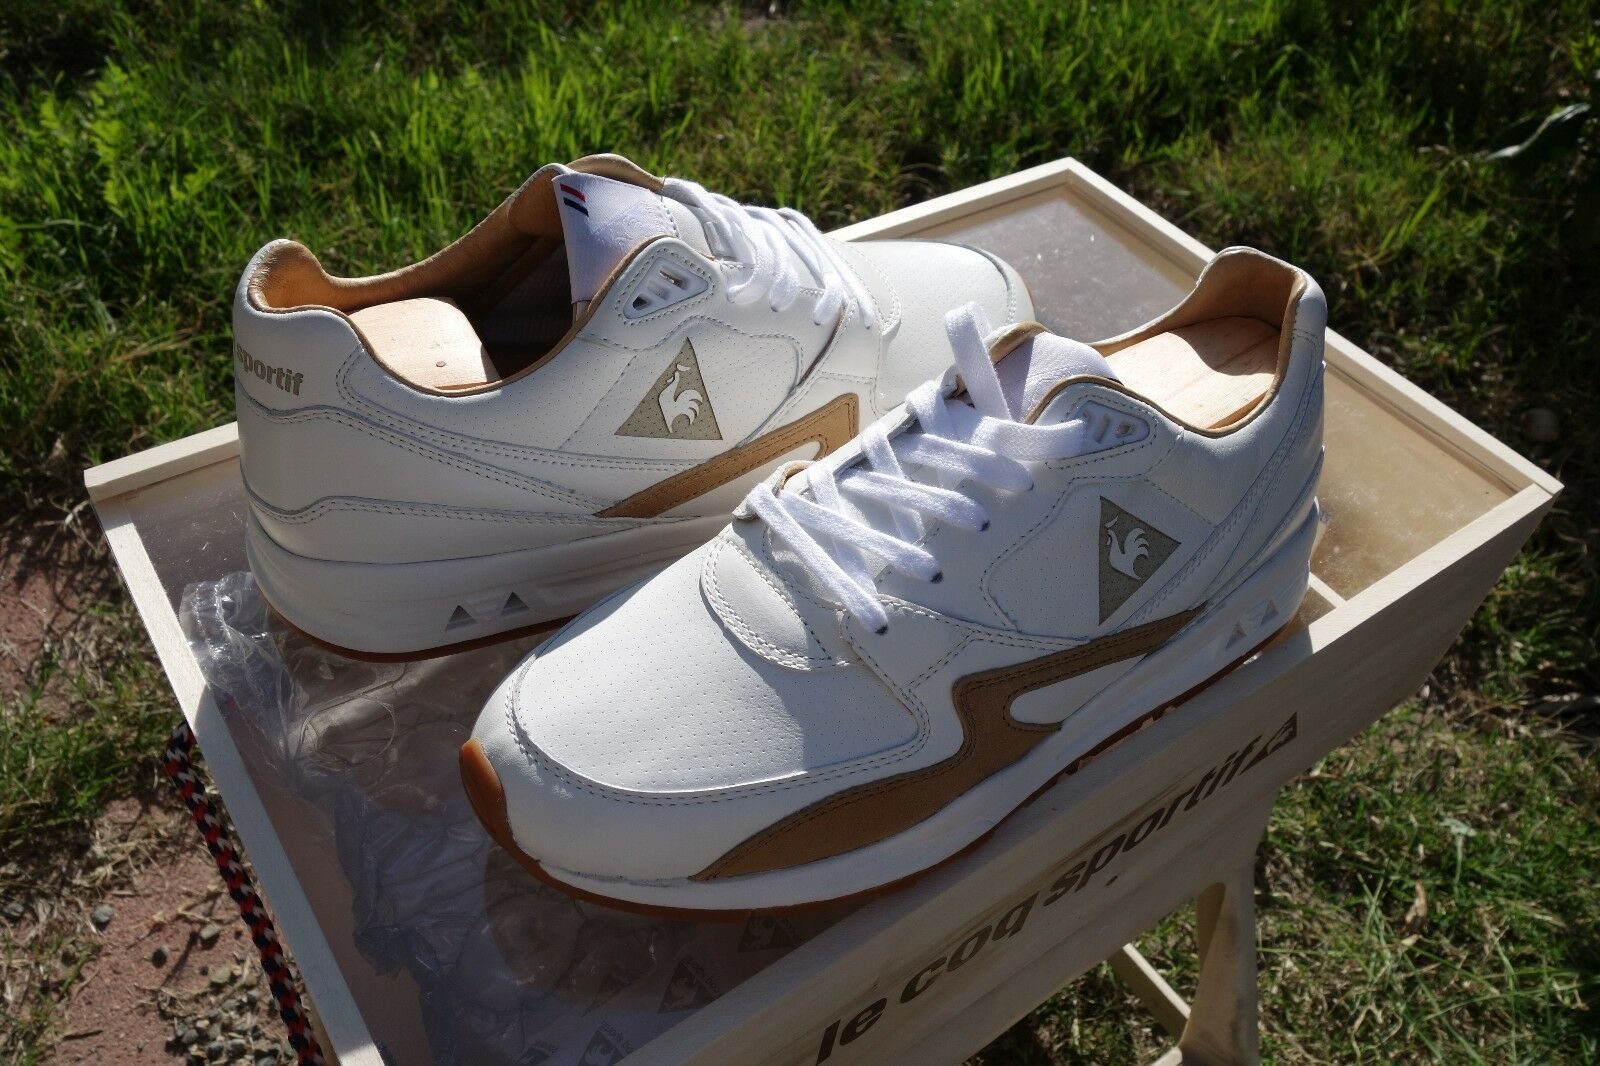 Le Coq Sportif R800 MIF Made in France Size 9, pairs